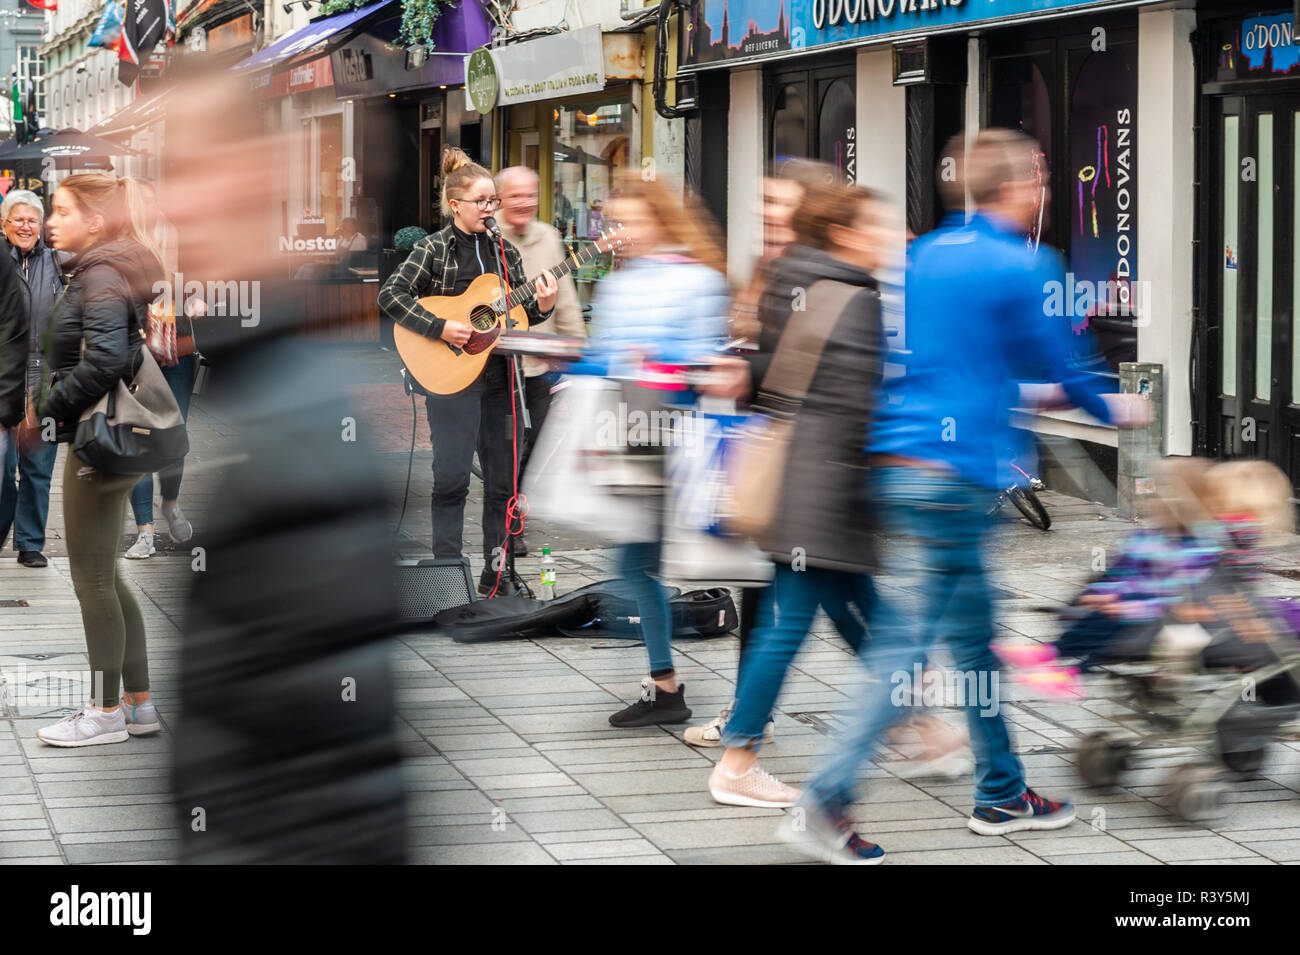 cork-ireland-24th-nov-2018-shoppers-rush-in-different-directions-as-shopping-for-christmas-starts-in-earnest-credit-andy-gibsonalamy-live-news-R3Y5MJ.jpg